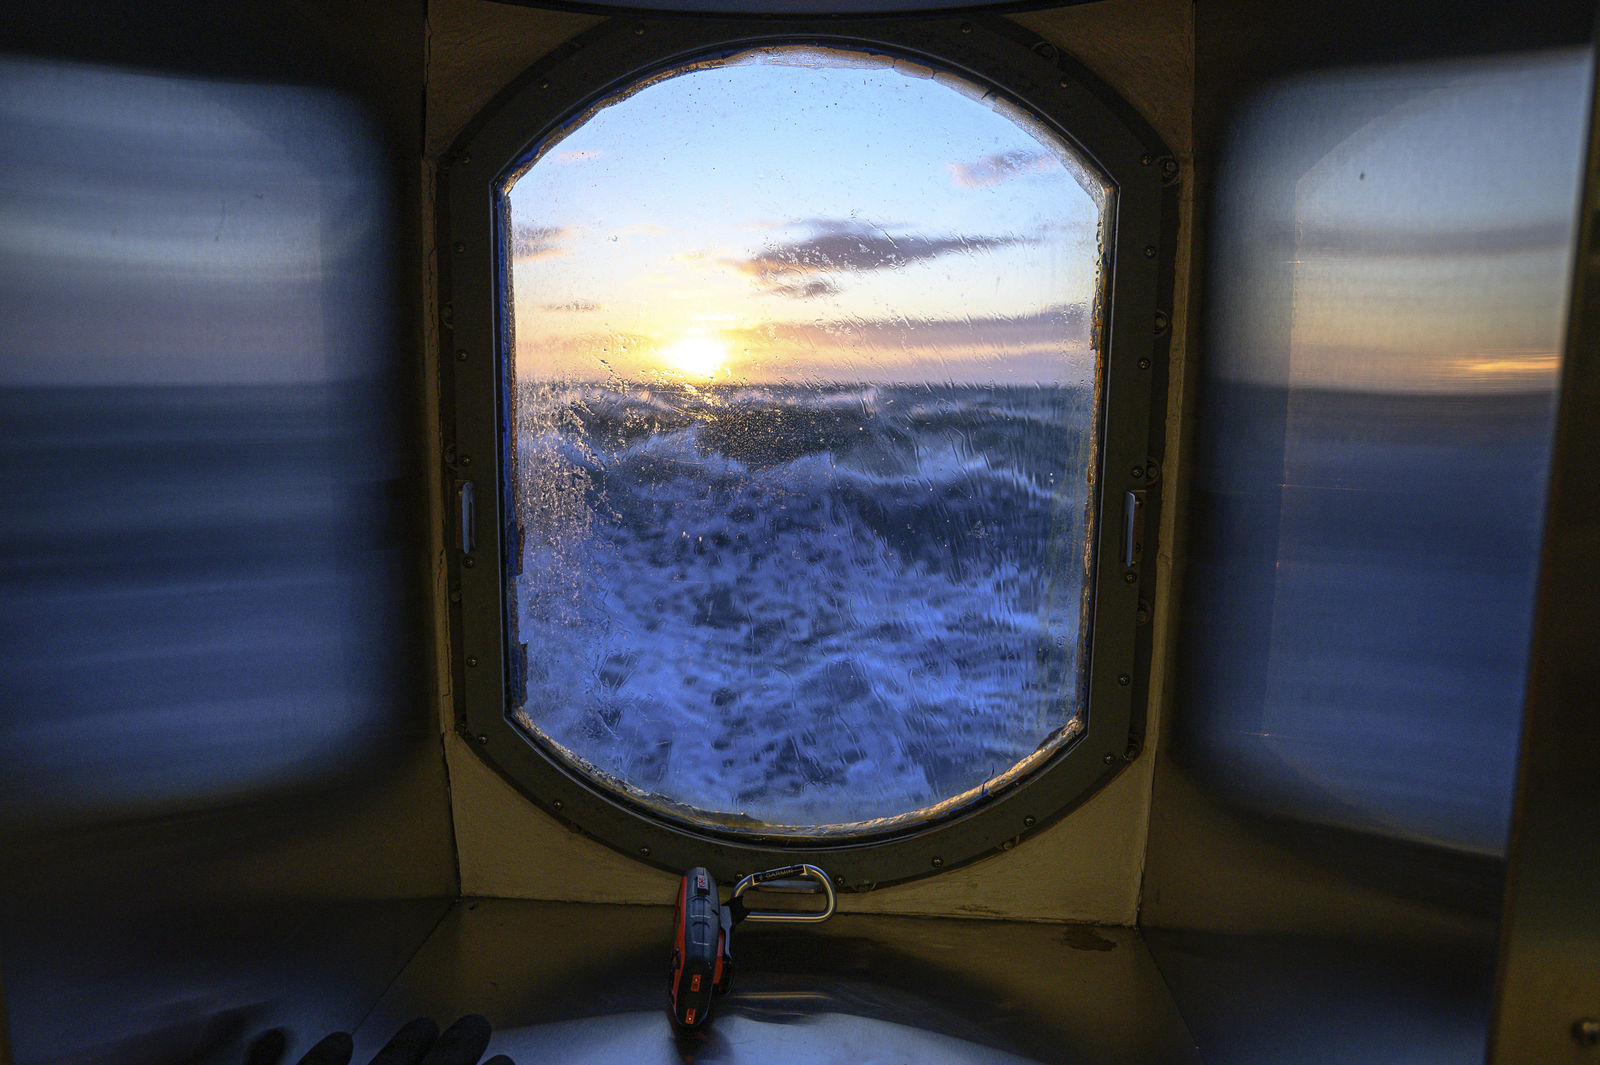 This Nov. 8, 2019, photo provided by John Guillote shows a view from the main lab of the Sikuliaq in the Chukchi Sea. University of Washington scientists onboard the research vessel are studying the changes and how less sea ice will affect coastlines, which already are vulnerable to erosion because increased waves delivered by storms. More erosion would increase the chance of winter flooding in villages and danger to hunters in small boats. (John Guillote via AP)